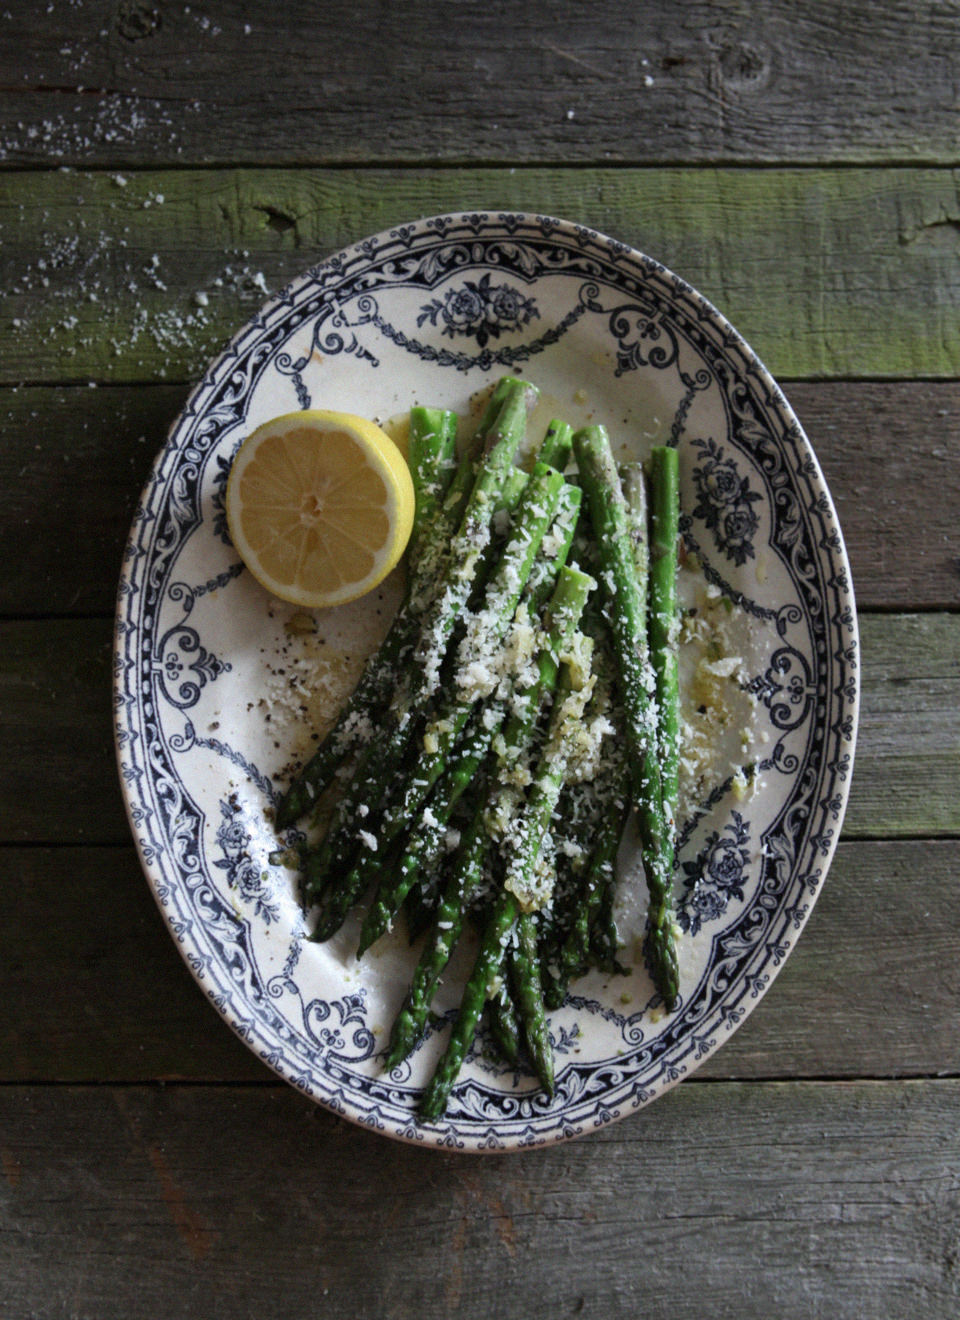 Sauteed-Asparagus-with-Garlic-Butter-&-Parmesan-Cheese-2